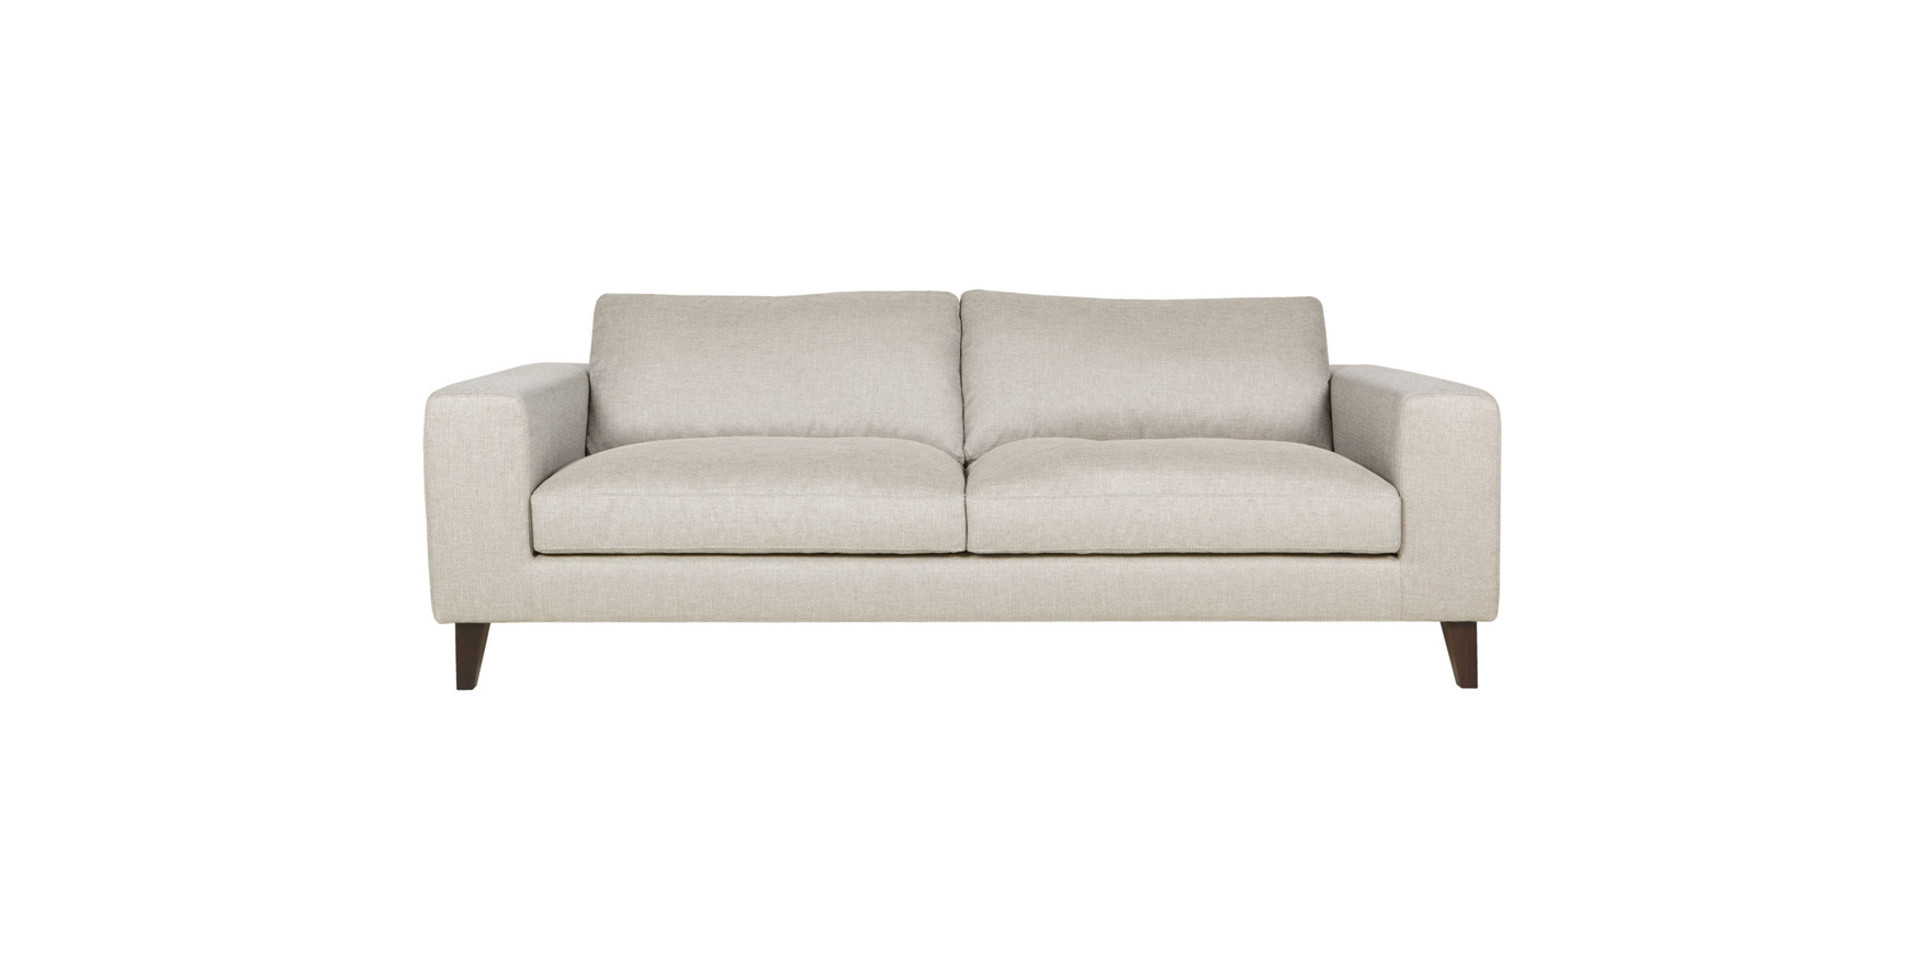 sits-passion-canape-3seater_himalaya3_grey-beige_1